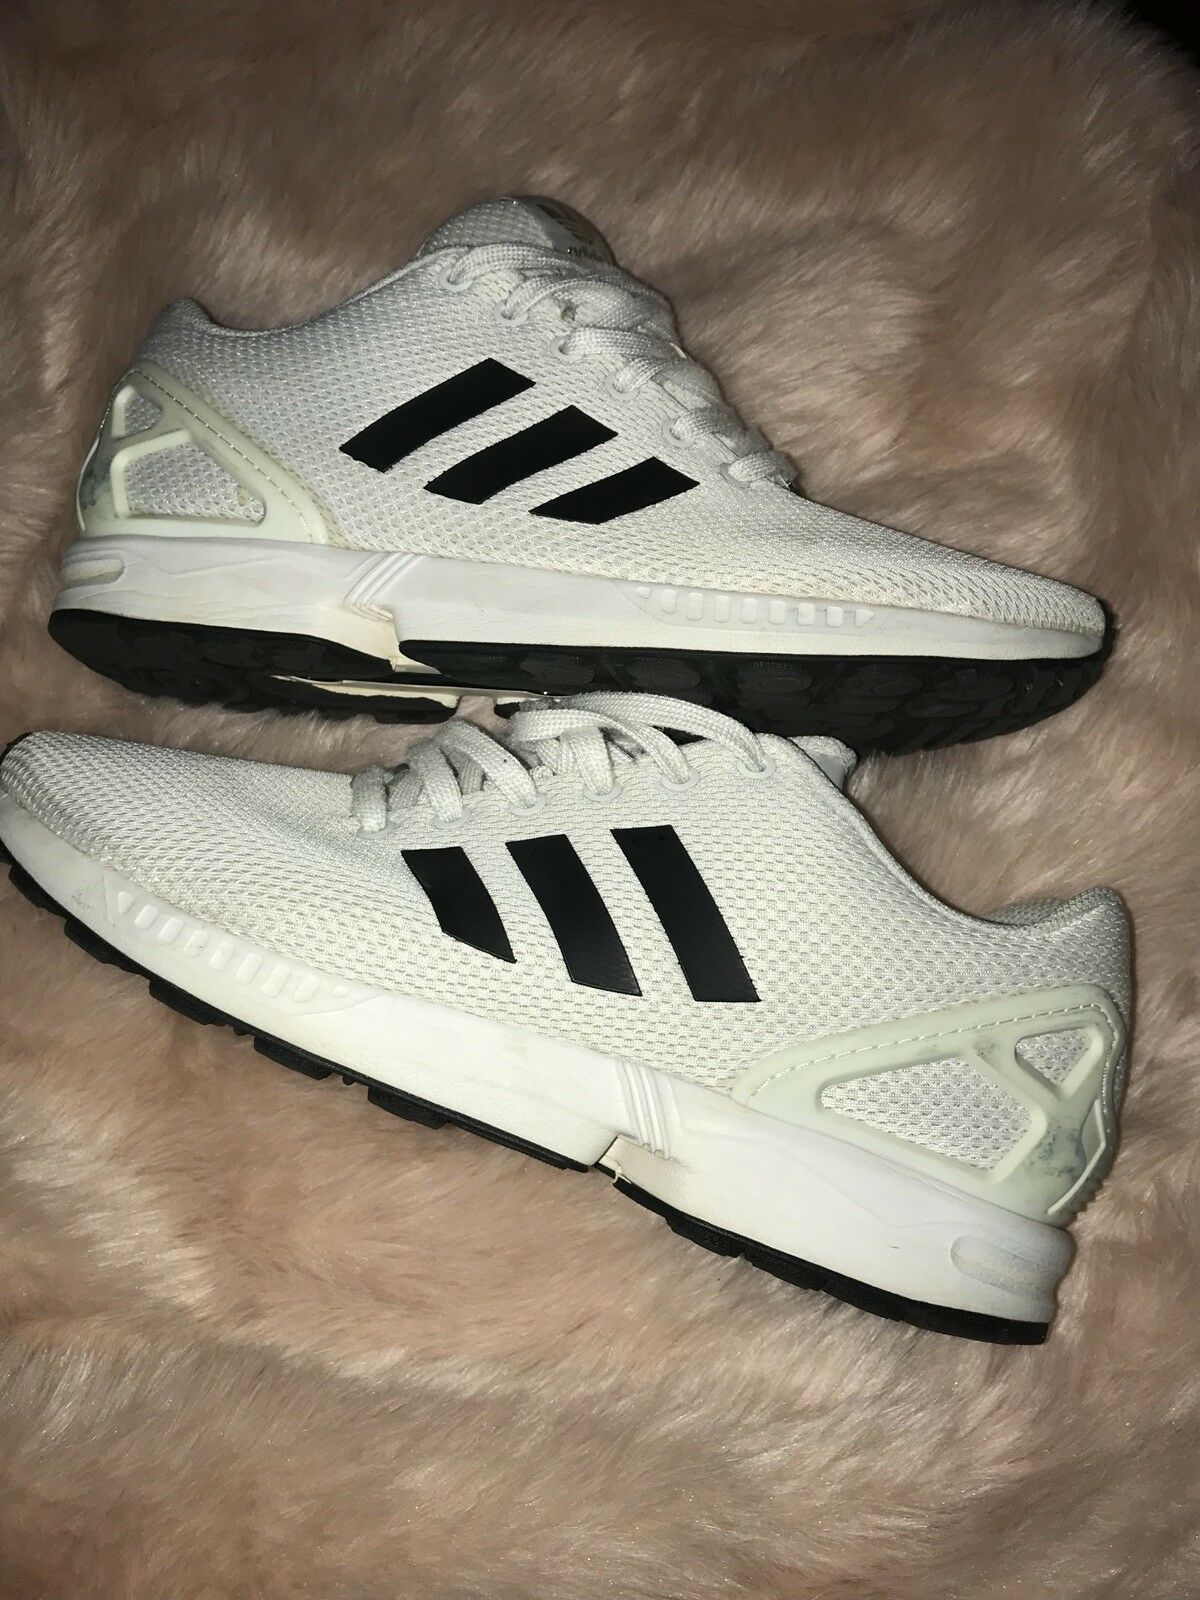 Adidas ZX Flux White Black gold BA8655 Pre-Owned Great Condition